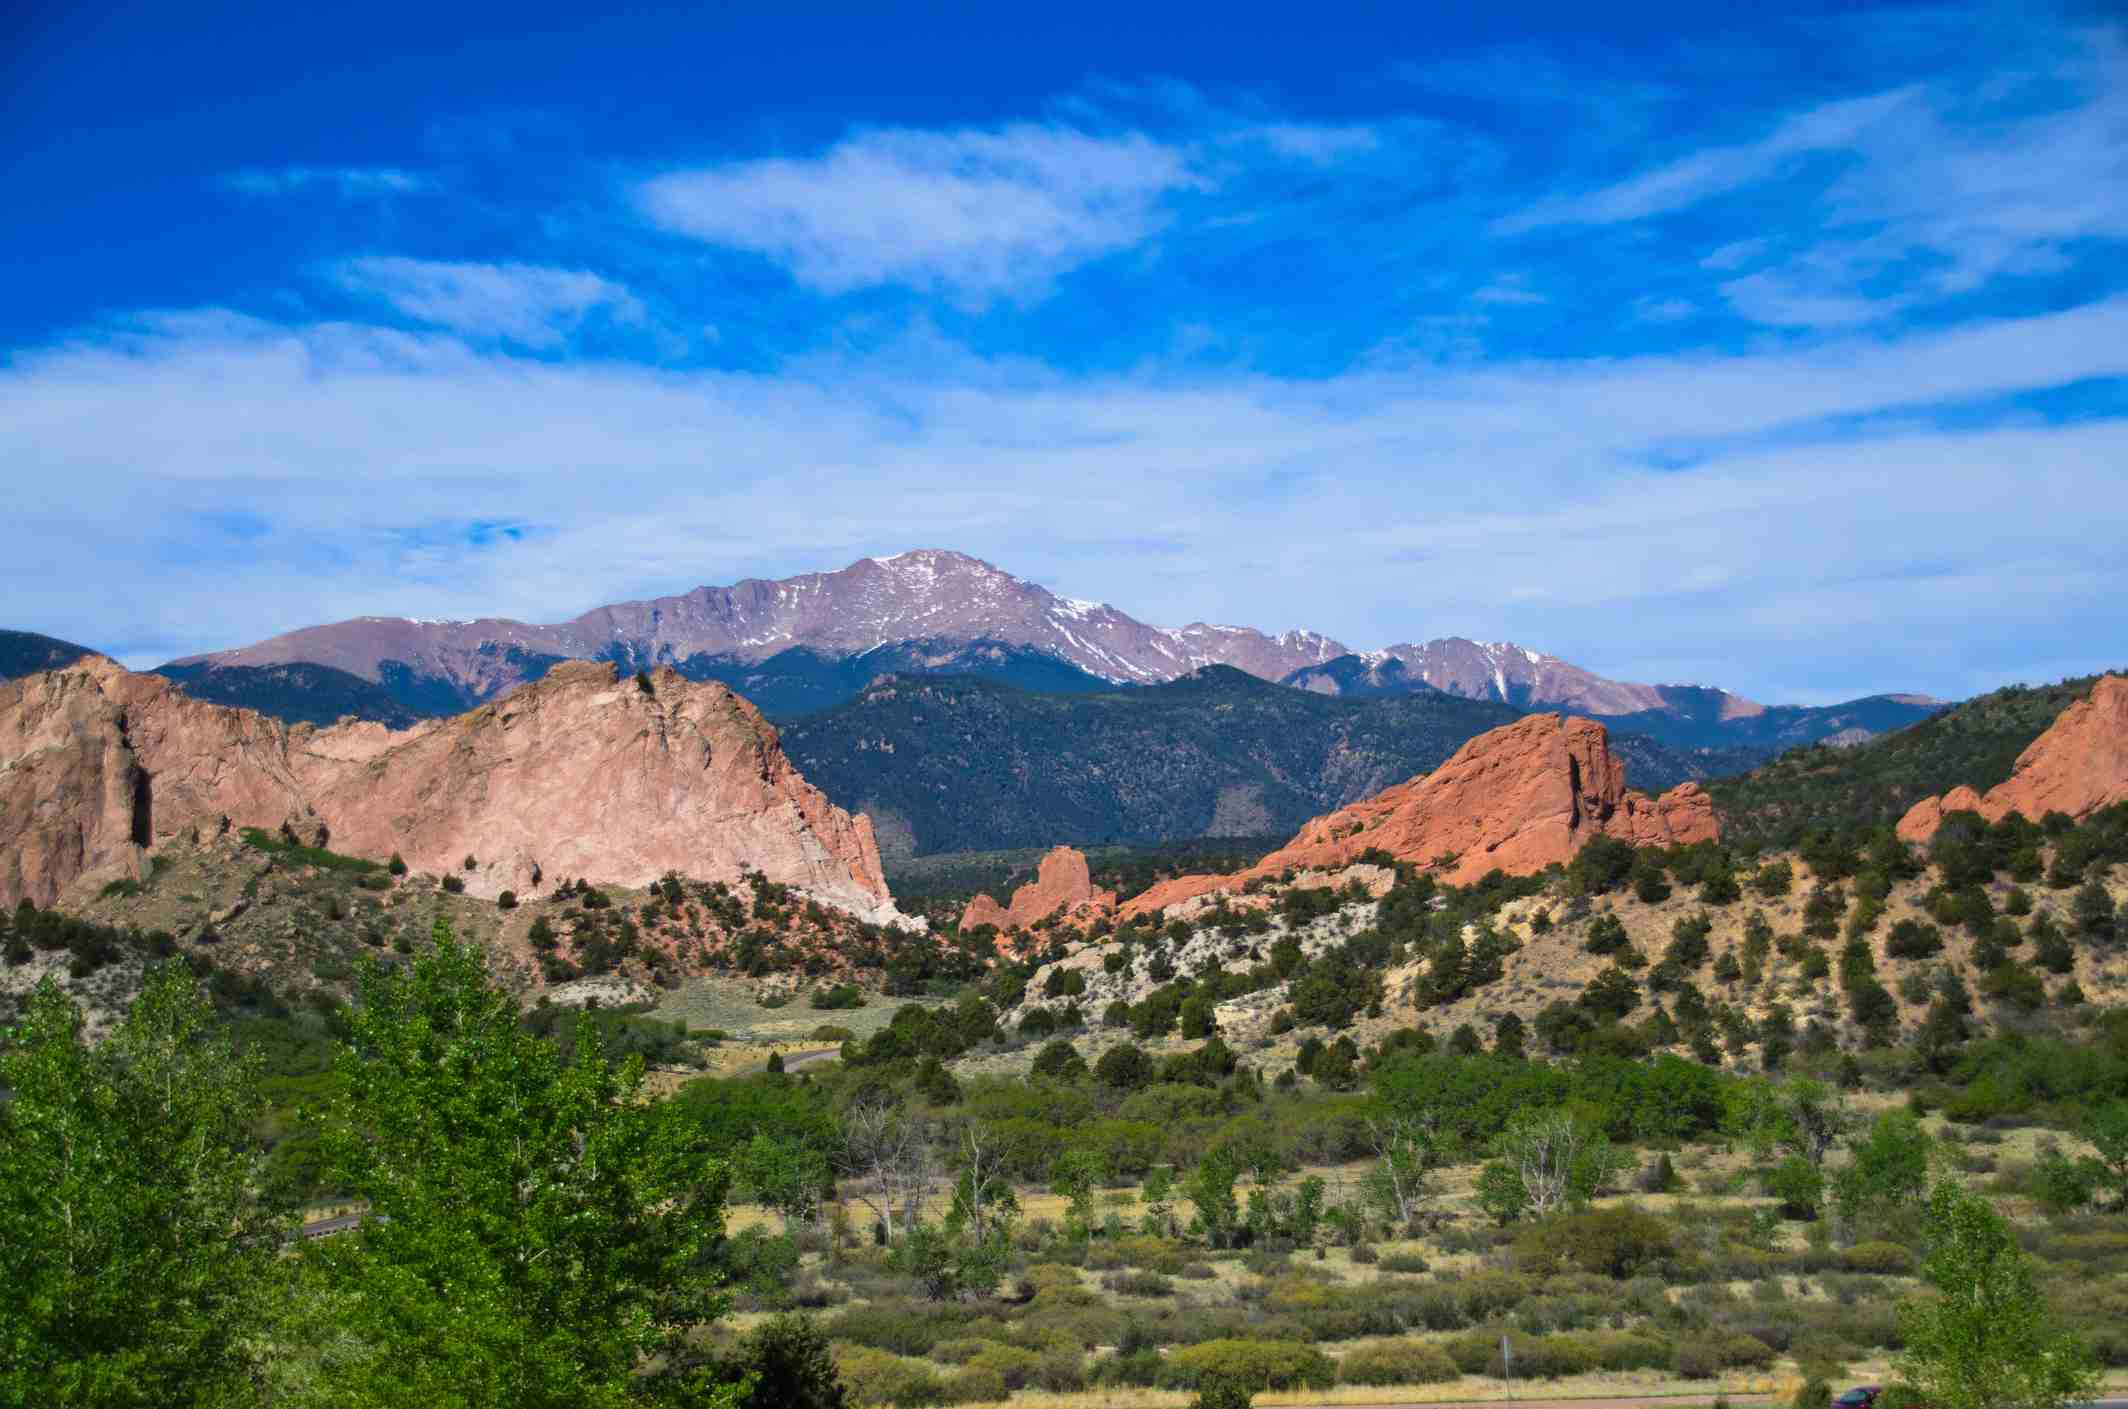 Garden of the Gods with Pikes Peak